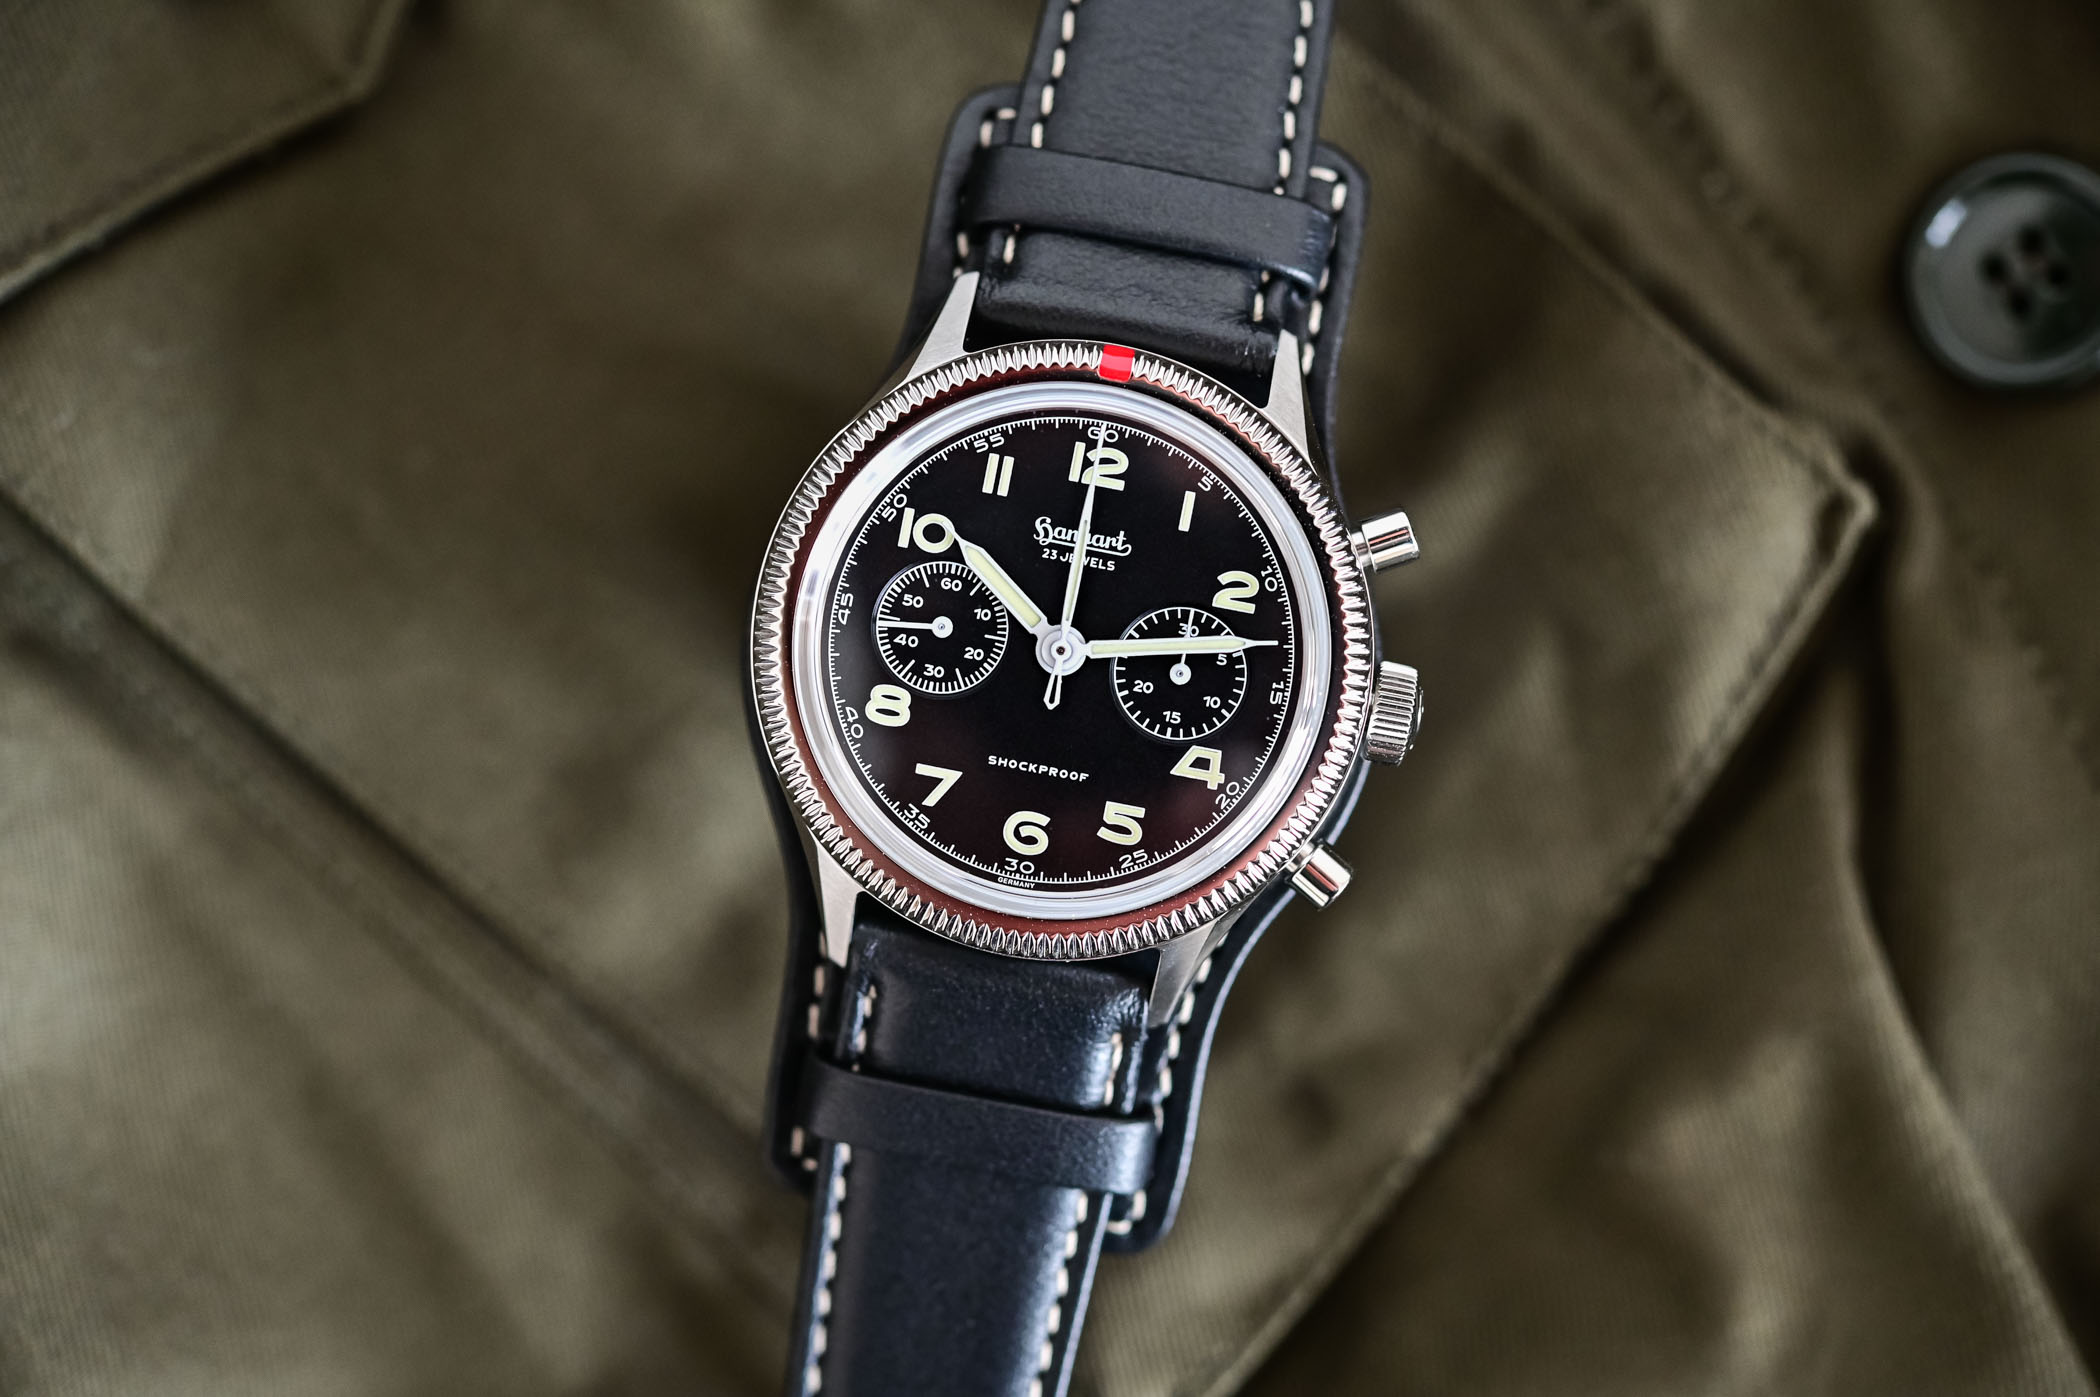 Review - The Hanhart 417 ES Reissue Pilots Chronograph - Specs & Price